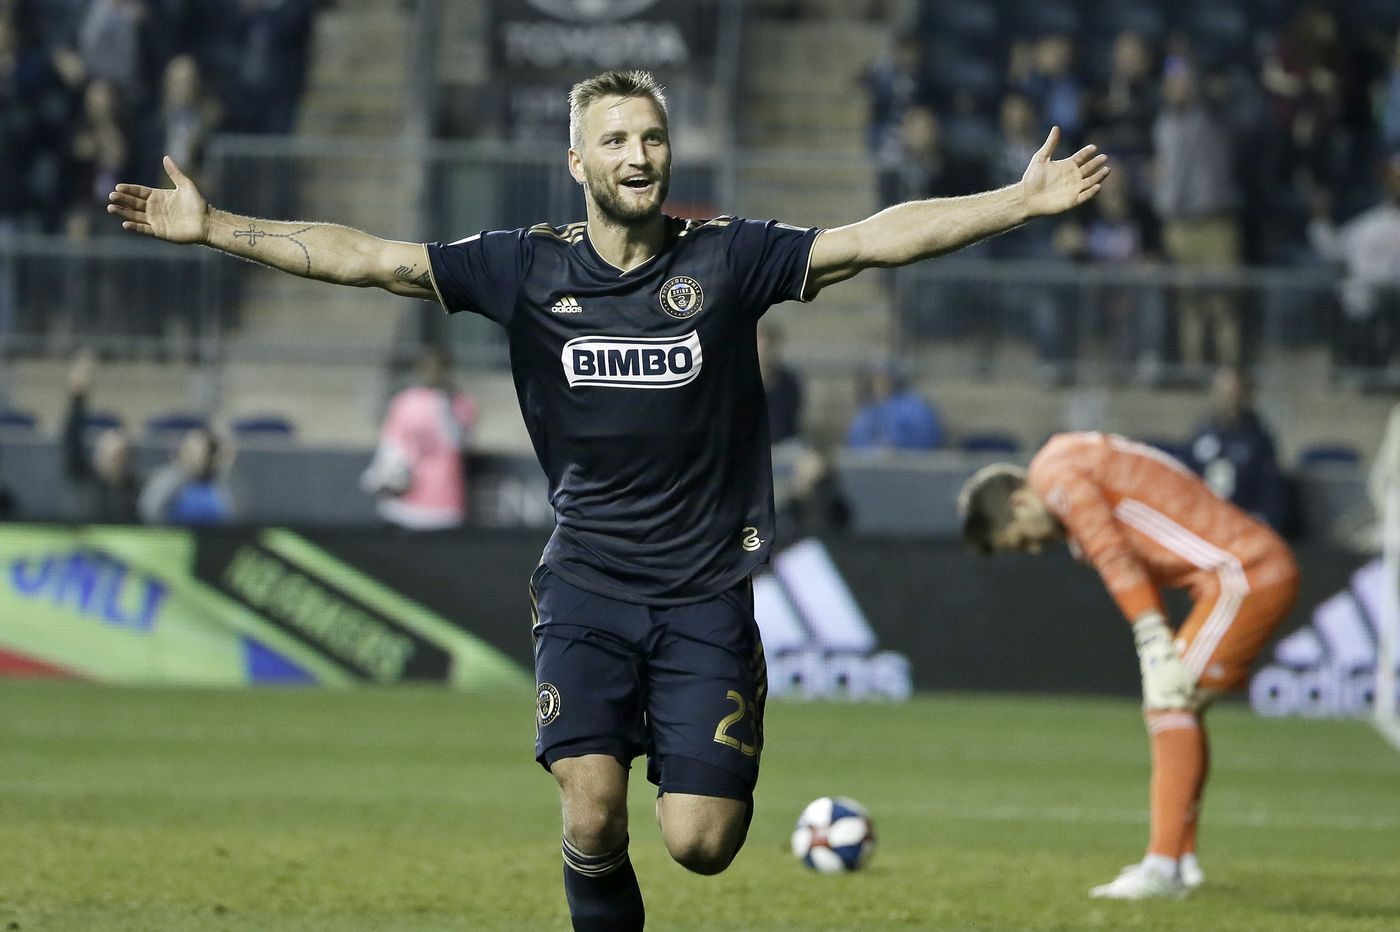 Union's Kacper Przybylko is over late-season injury, but not over missing the playoffs